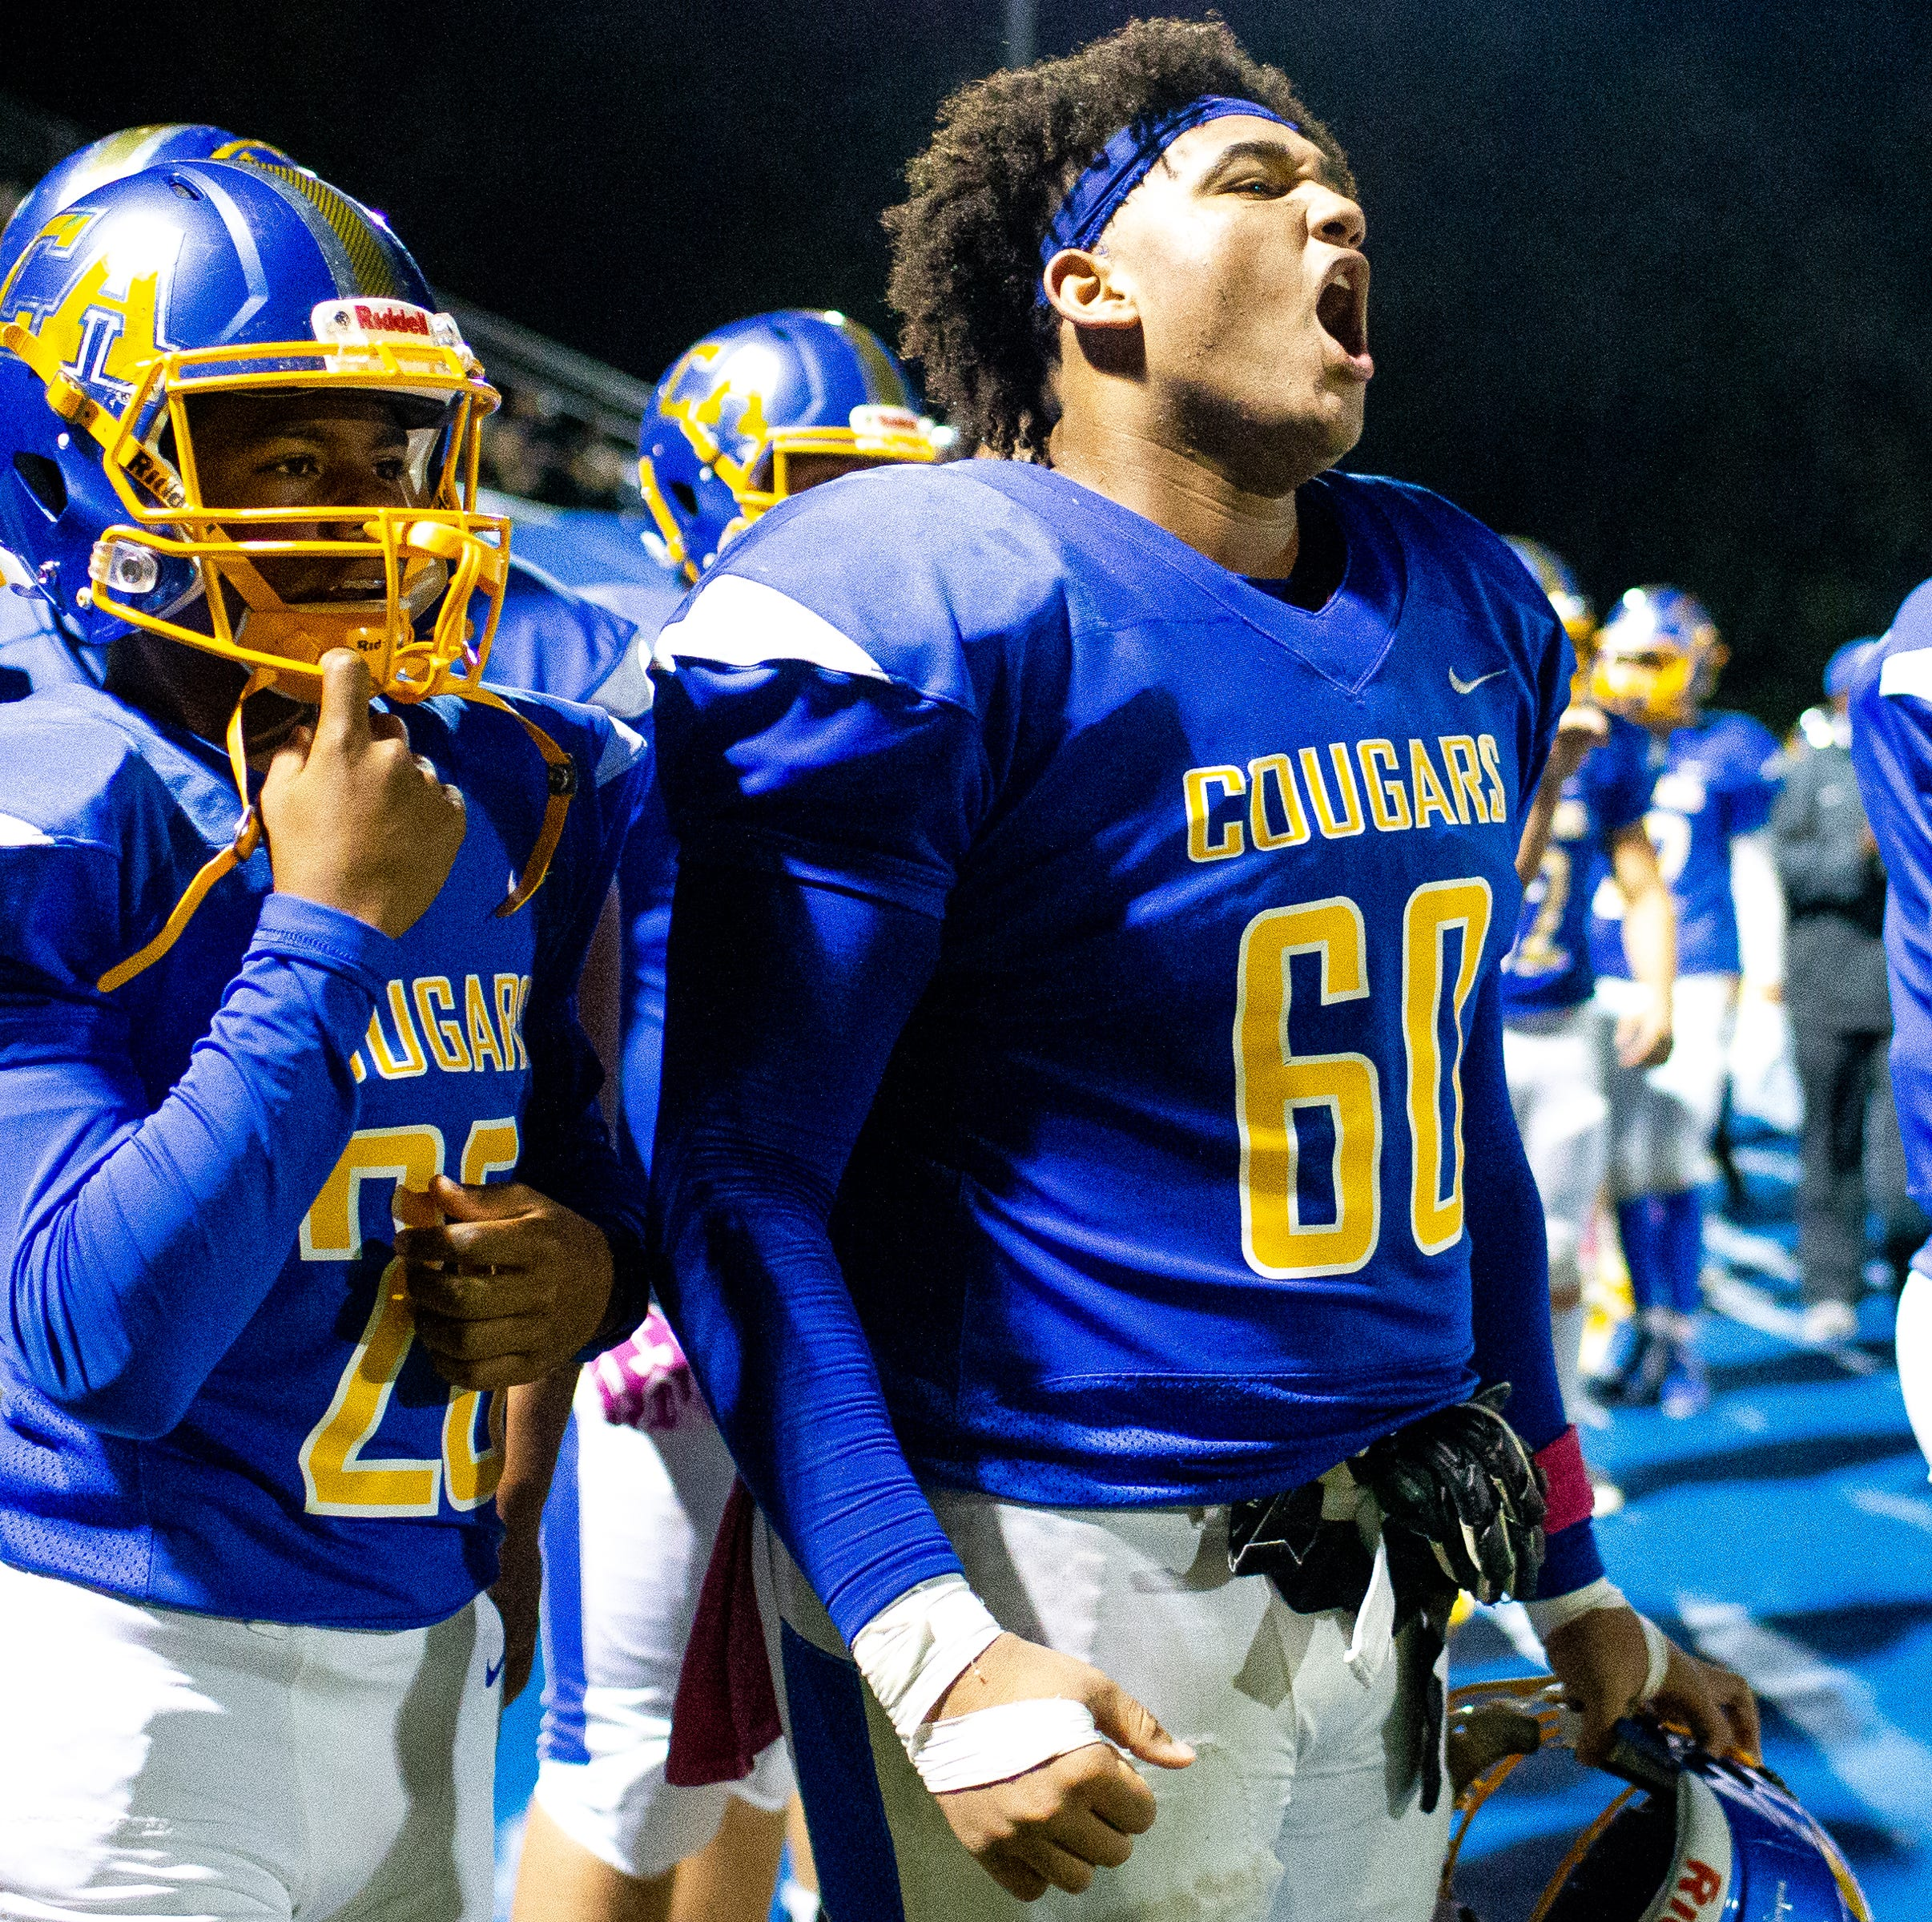 Clarksville Academy football, boys basketball teams forfeit games after using ineligible players